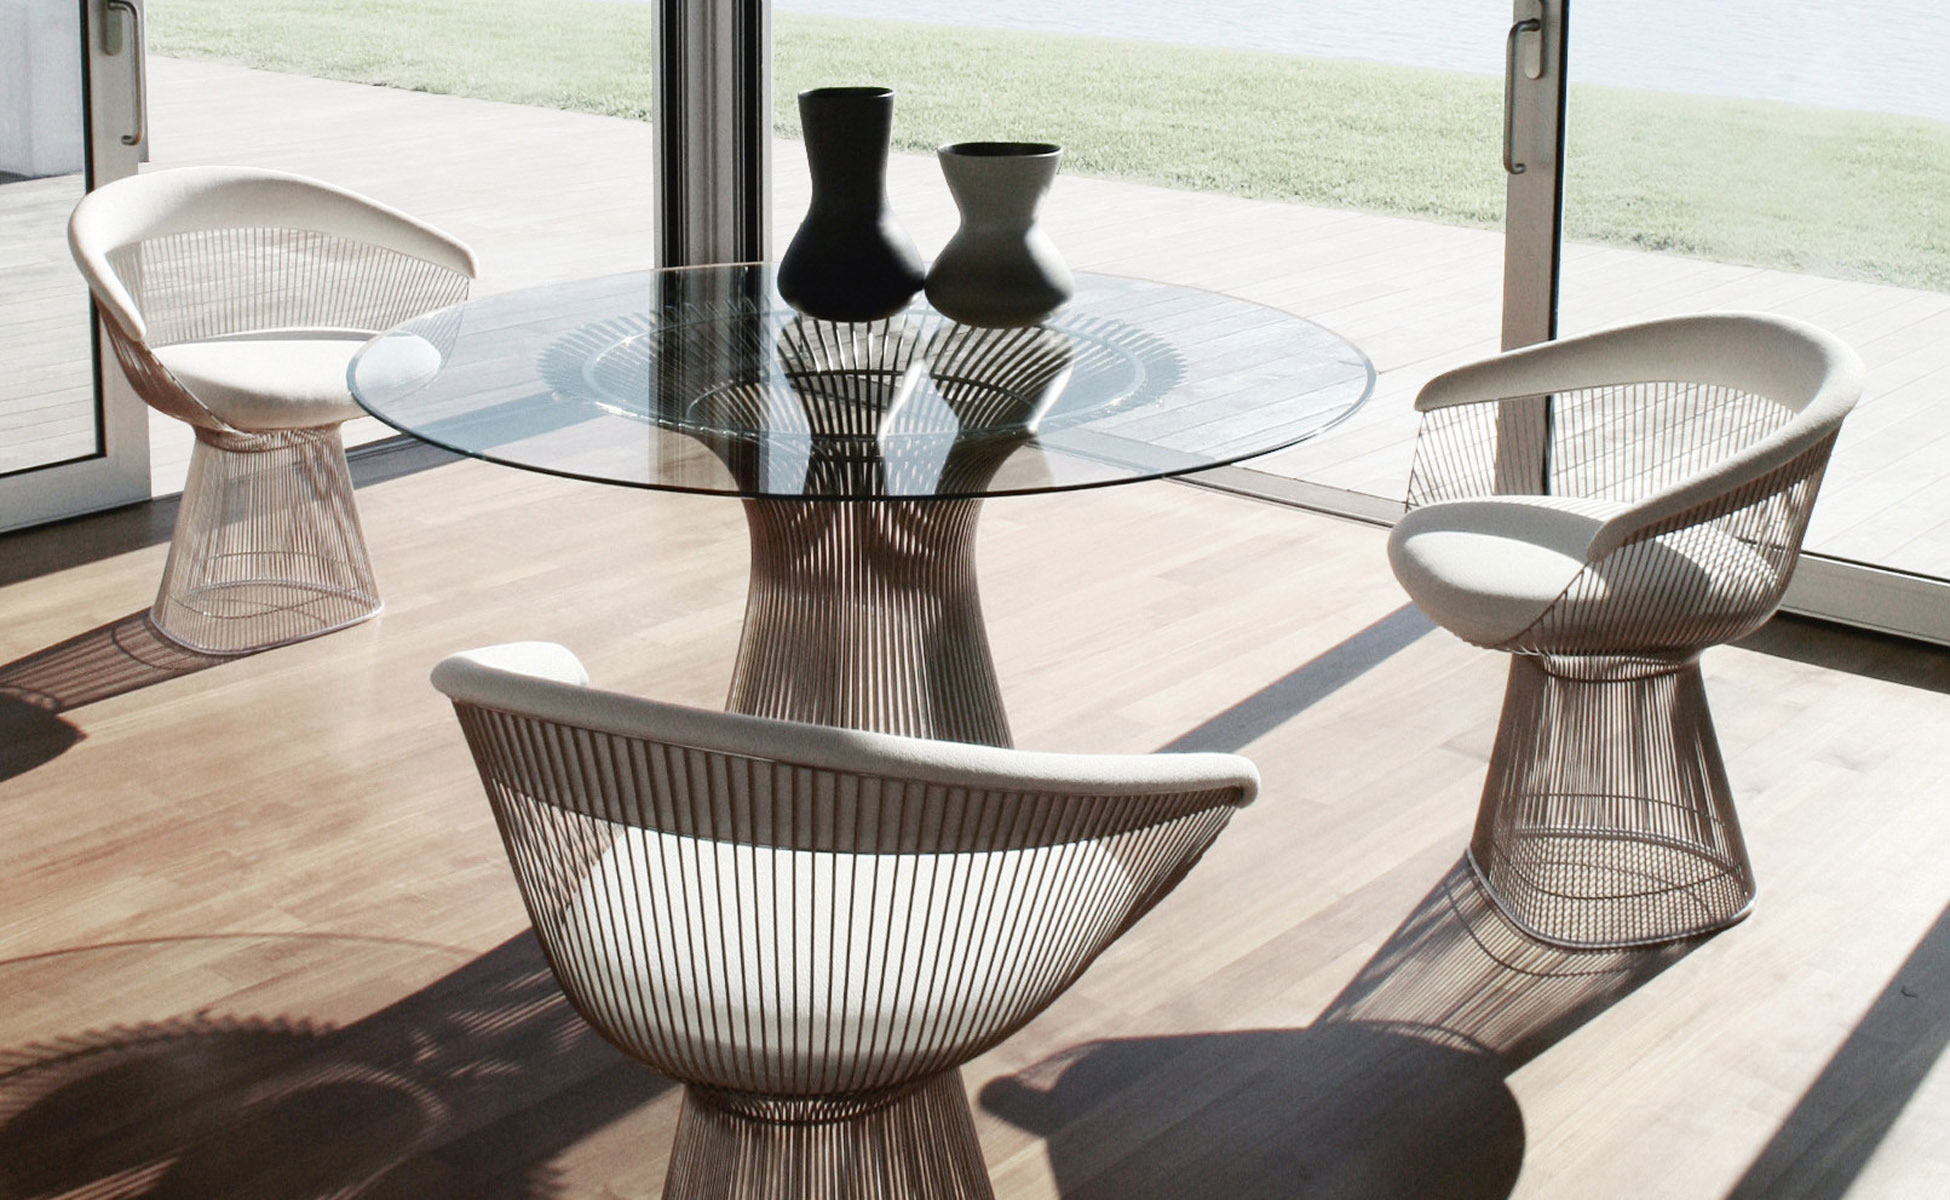 02 knoll International Platner chair berlin bei steidten+